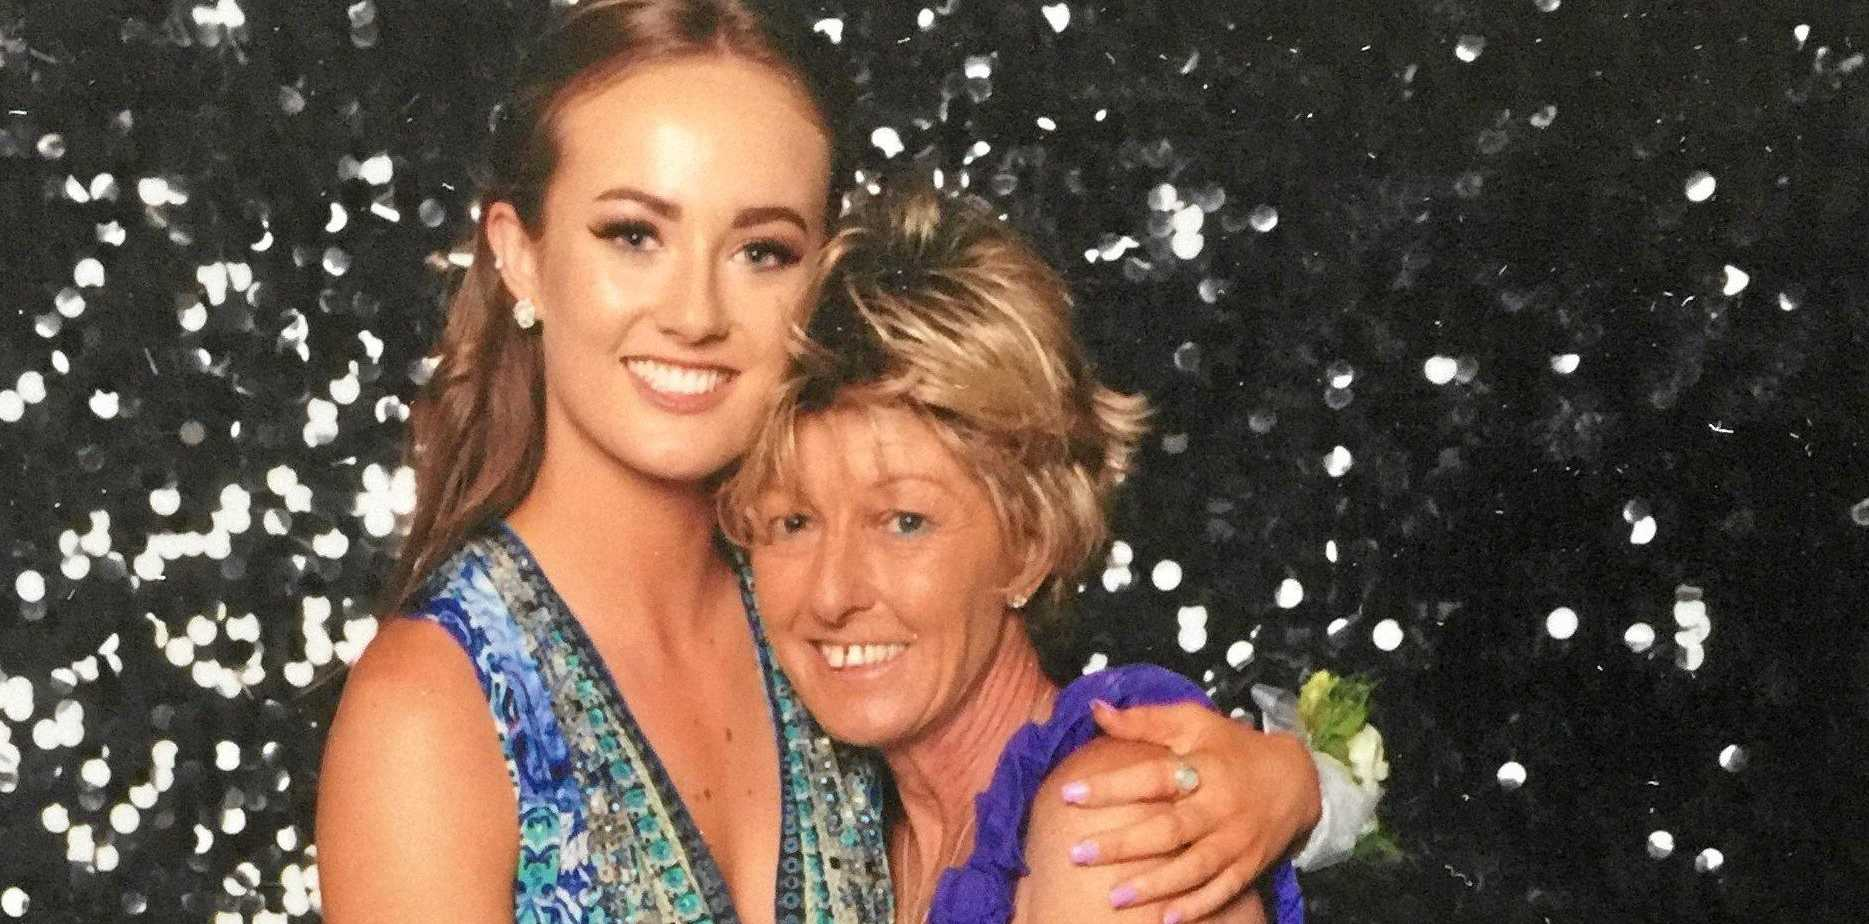 BONDS: Jesse Moss with her mum Peta who died of cancer last year. Peta wears a wig she loved after losing her hair from chemotherapy.